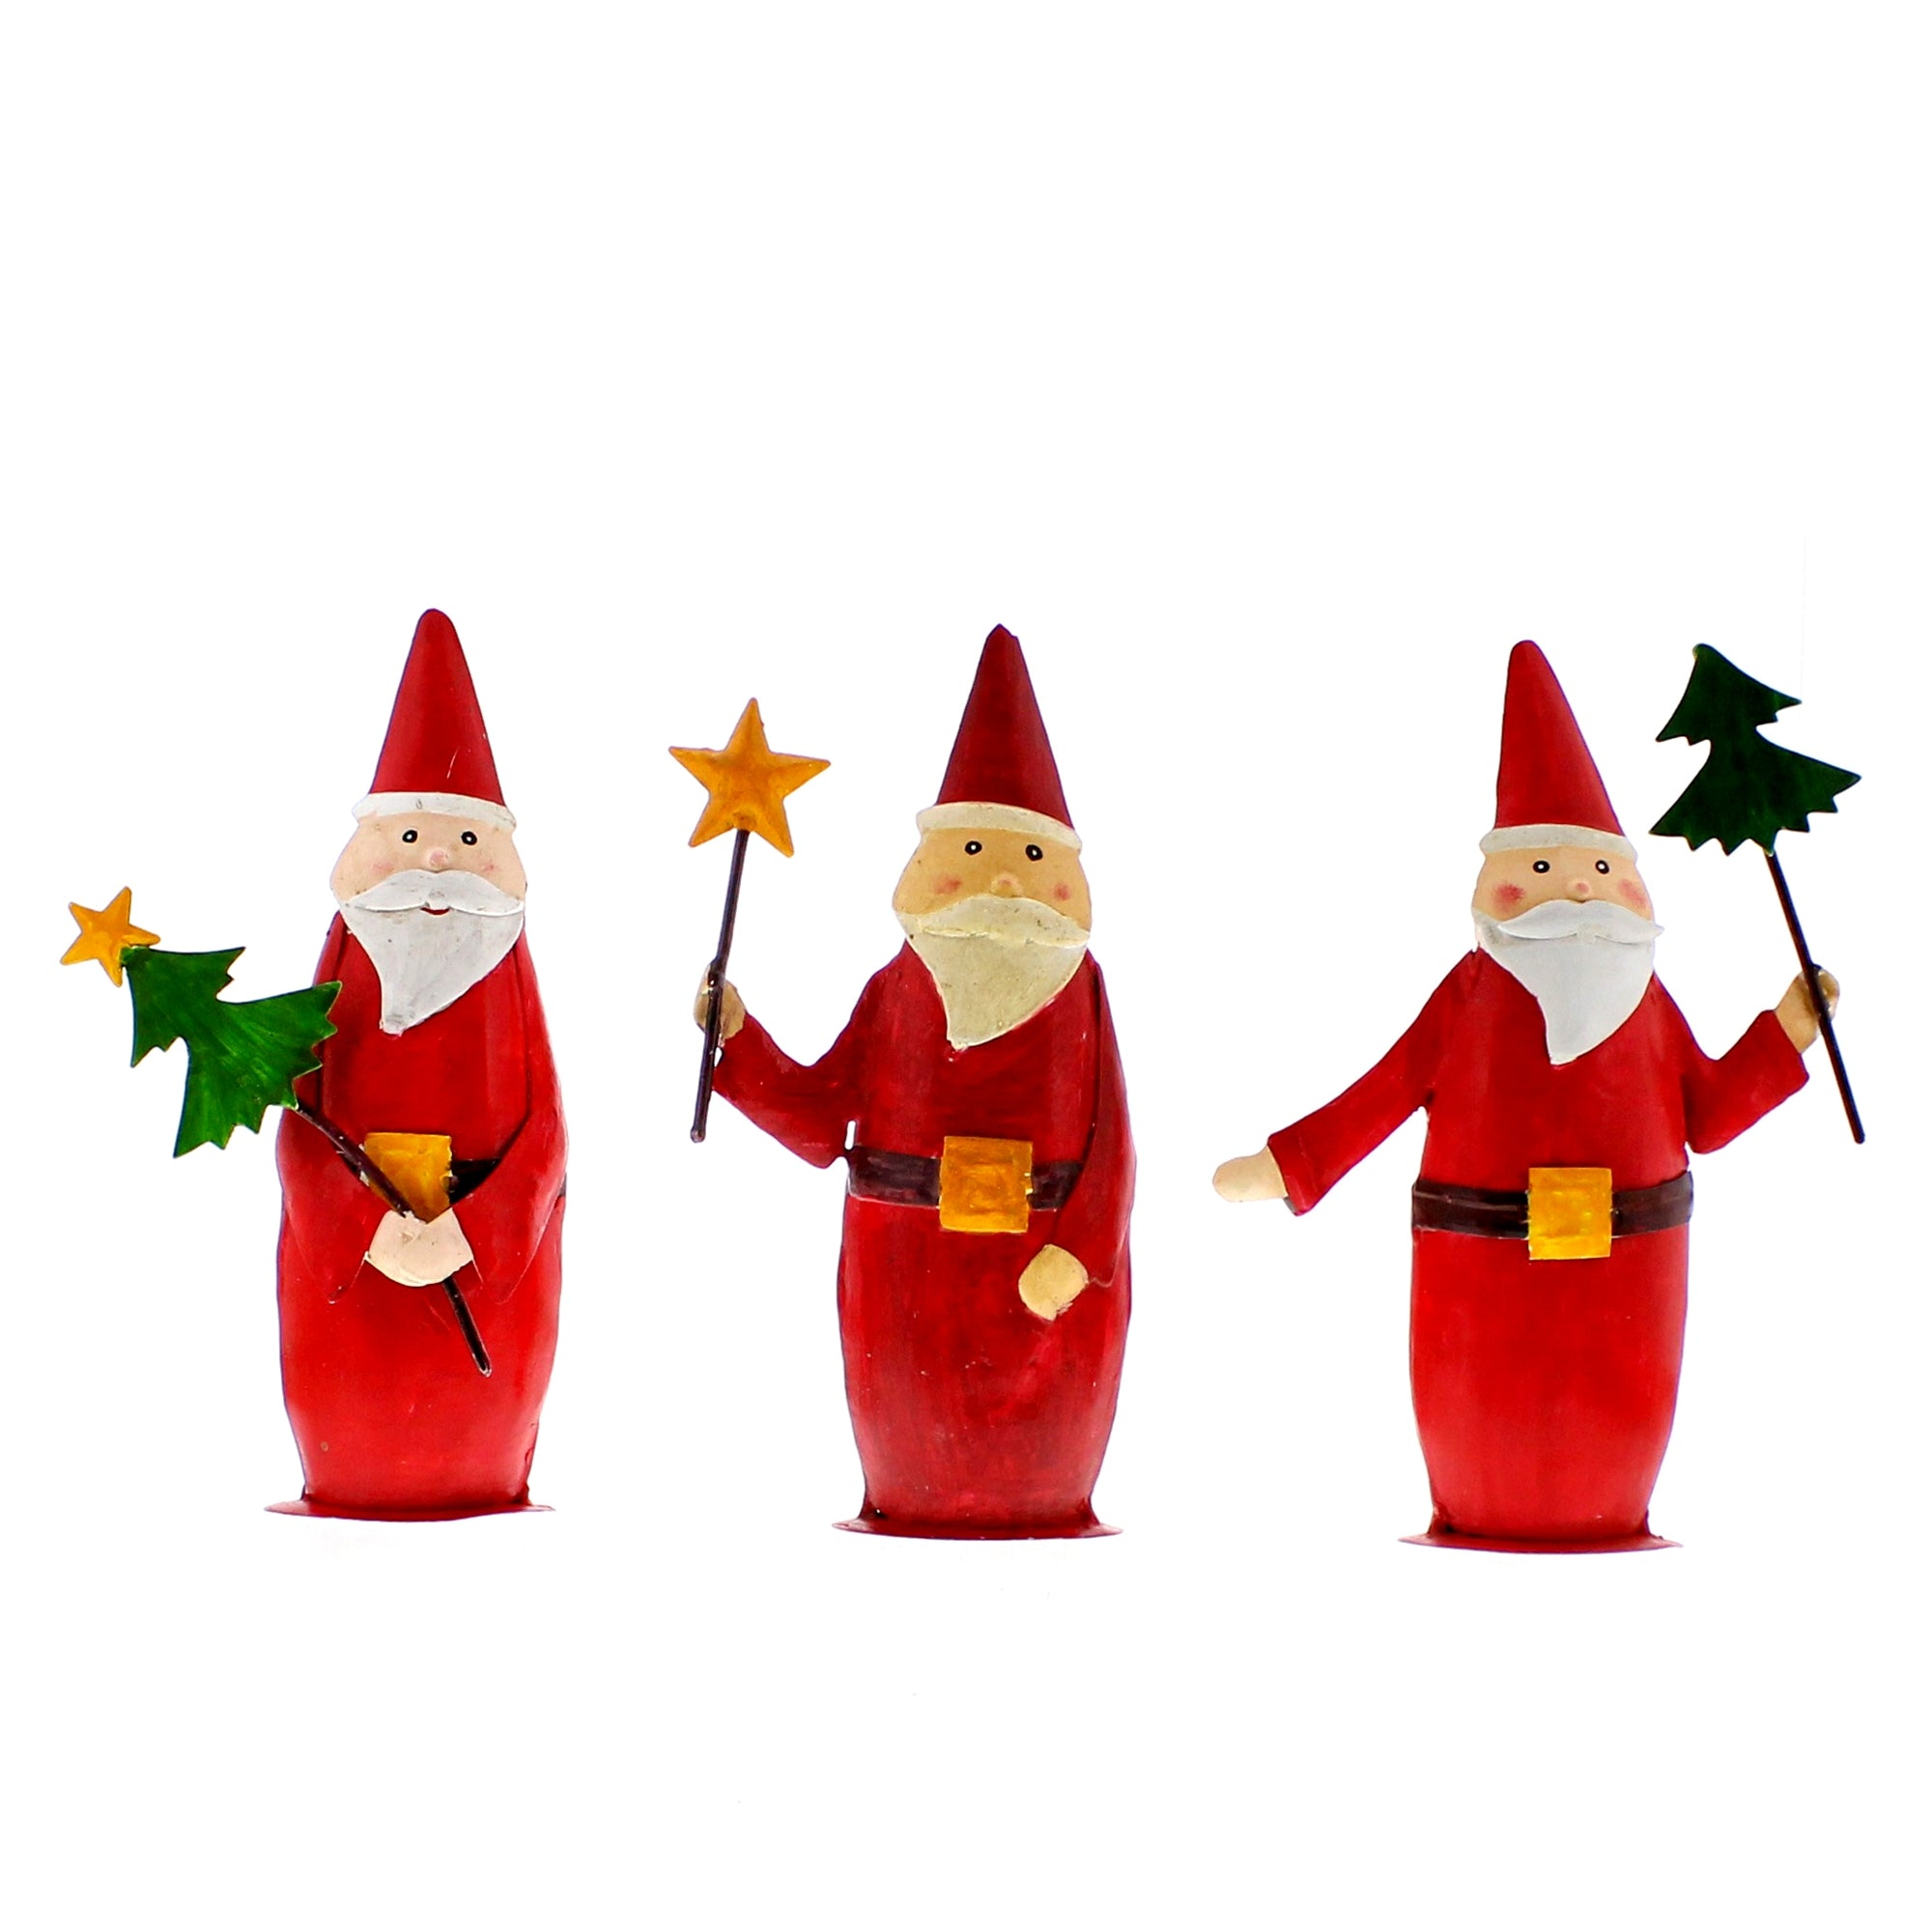 Painted Metal Santa Trio - Set of 3 - CARLYLE AVENUE